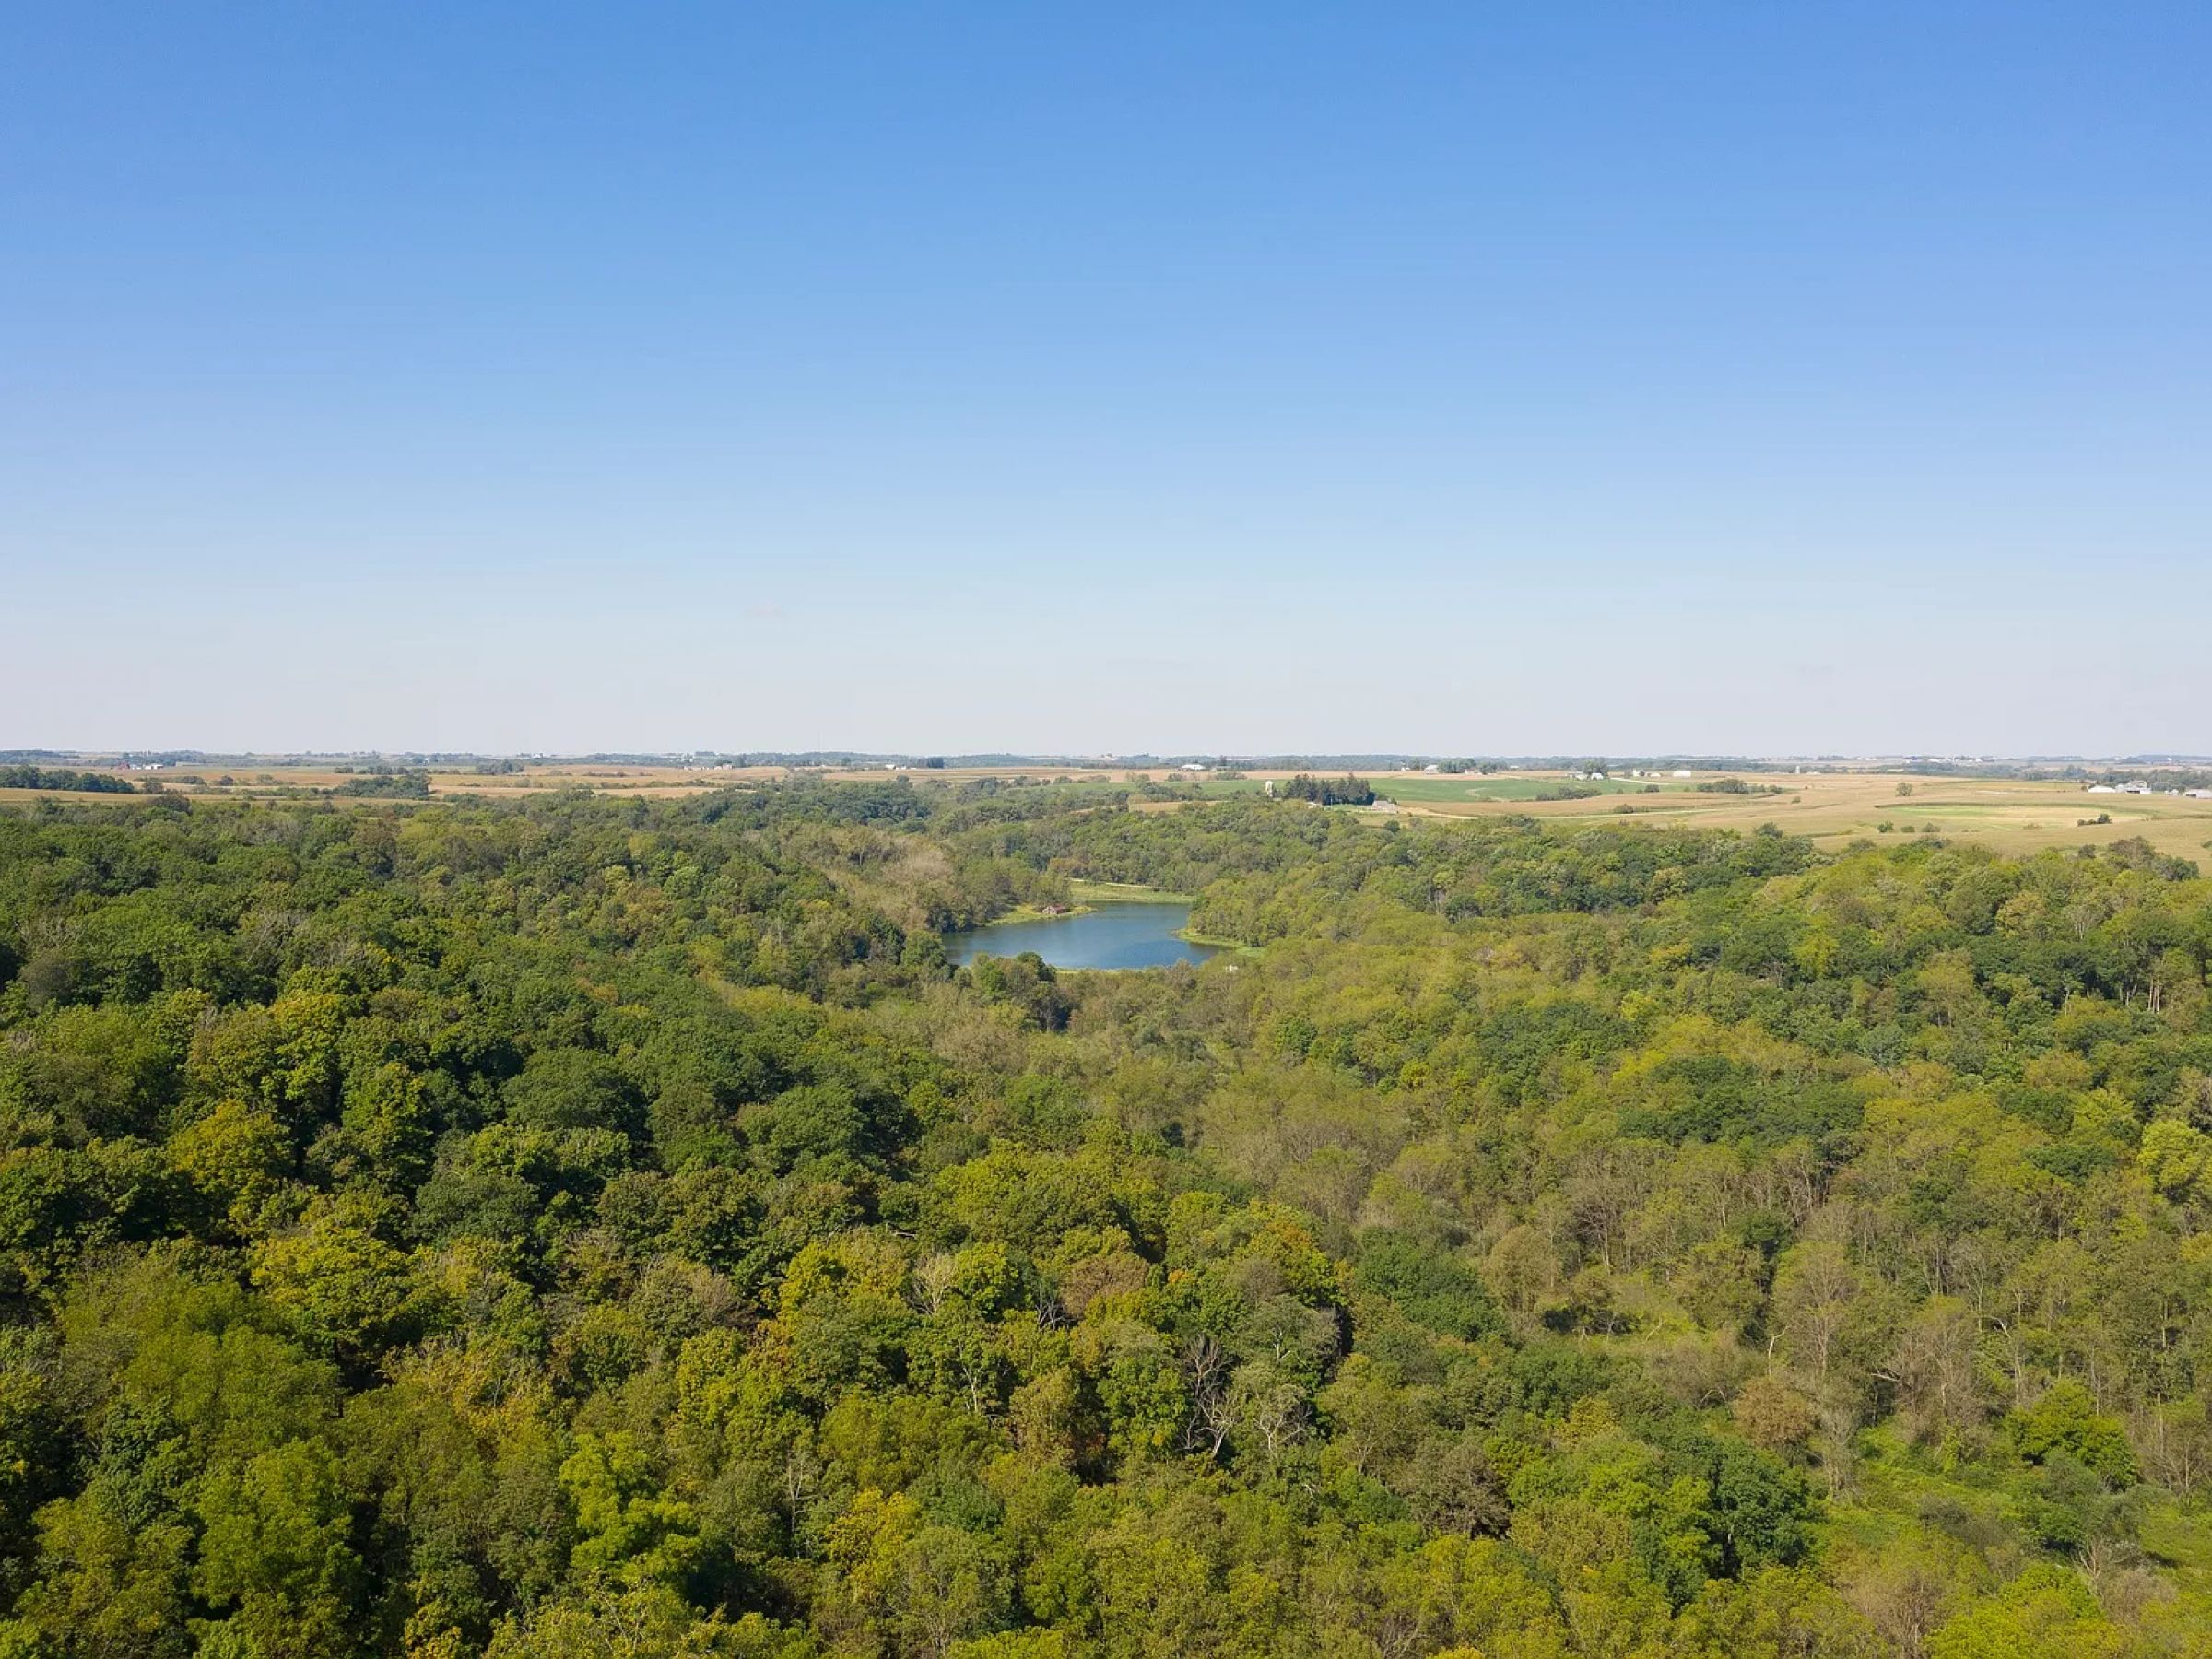 land-fayette-county-iowa-495-acres-listing-number-14992-6-2020-05-08-210242.jpg